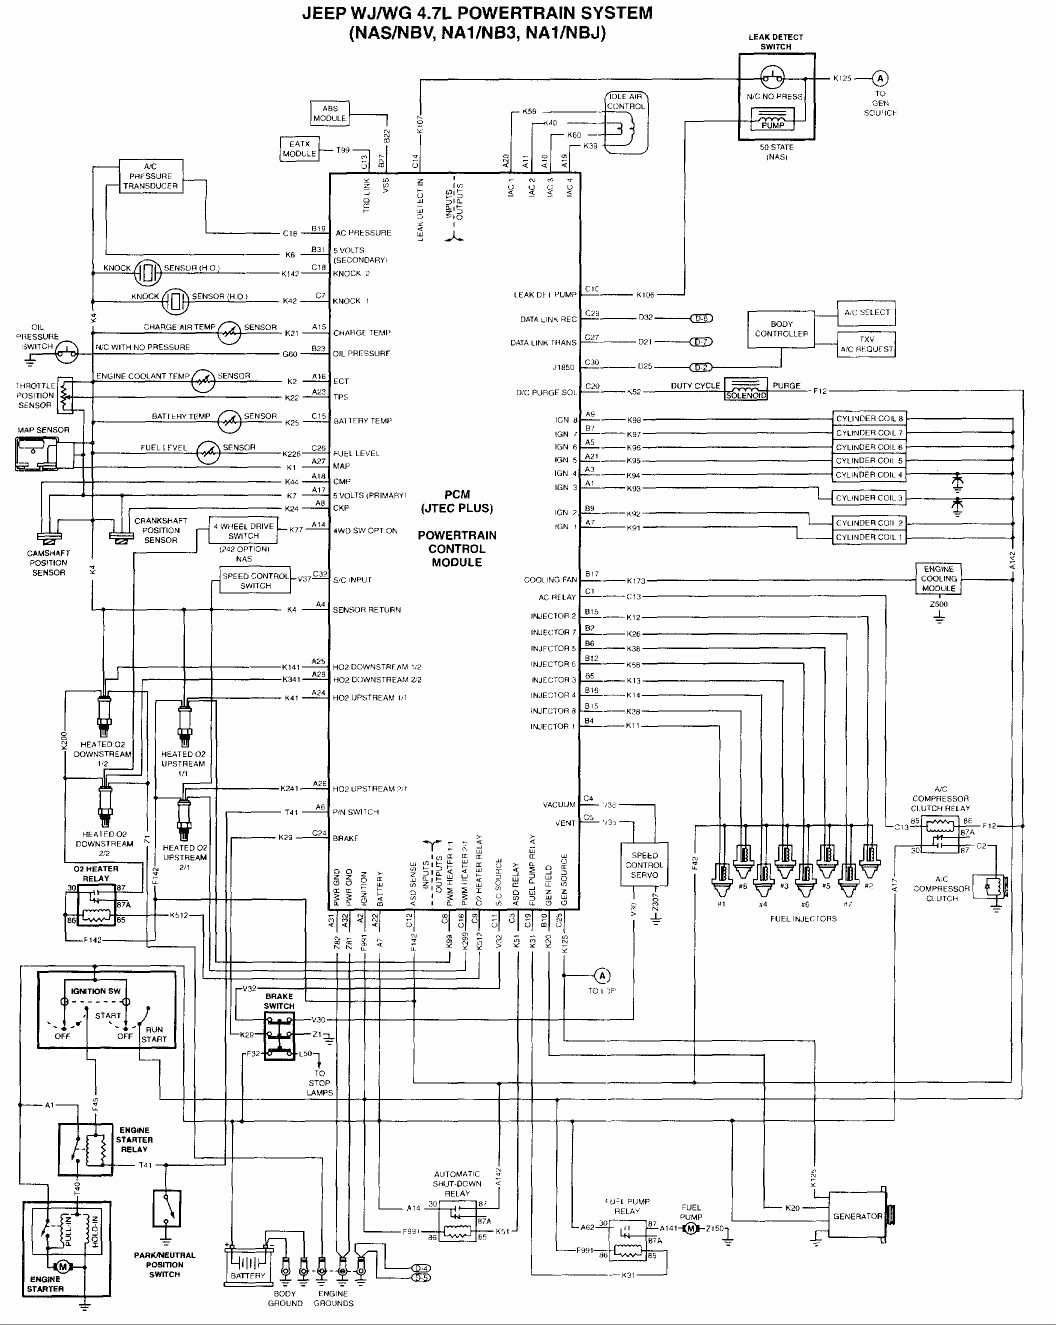 1995 Jeep Cherokee Auxiliary Fan Wiring Diagram | Manual E-Books - 2002 Jeep Grand Cherokee Cooling Fan Wiring Diagram